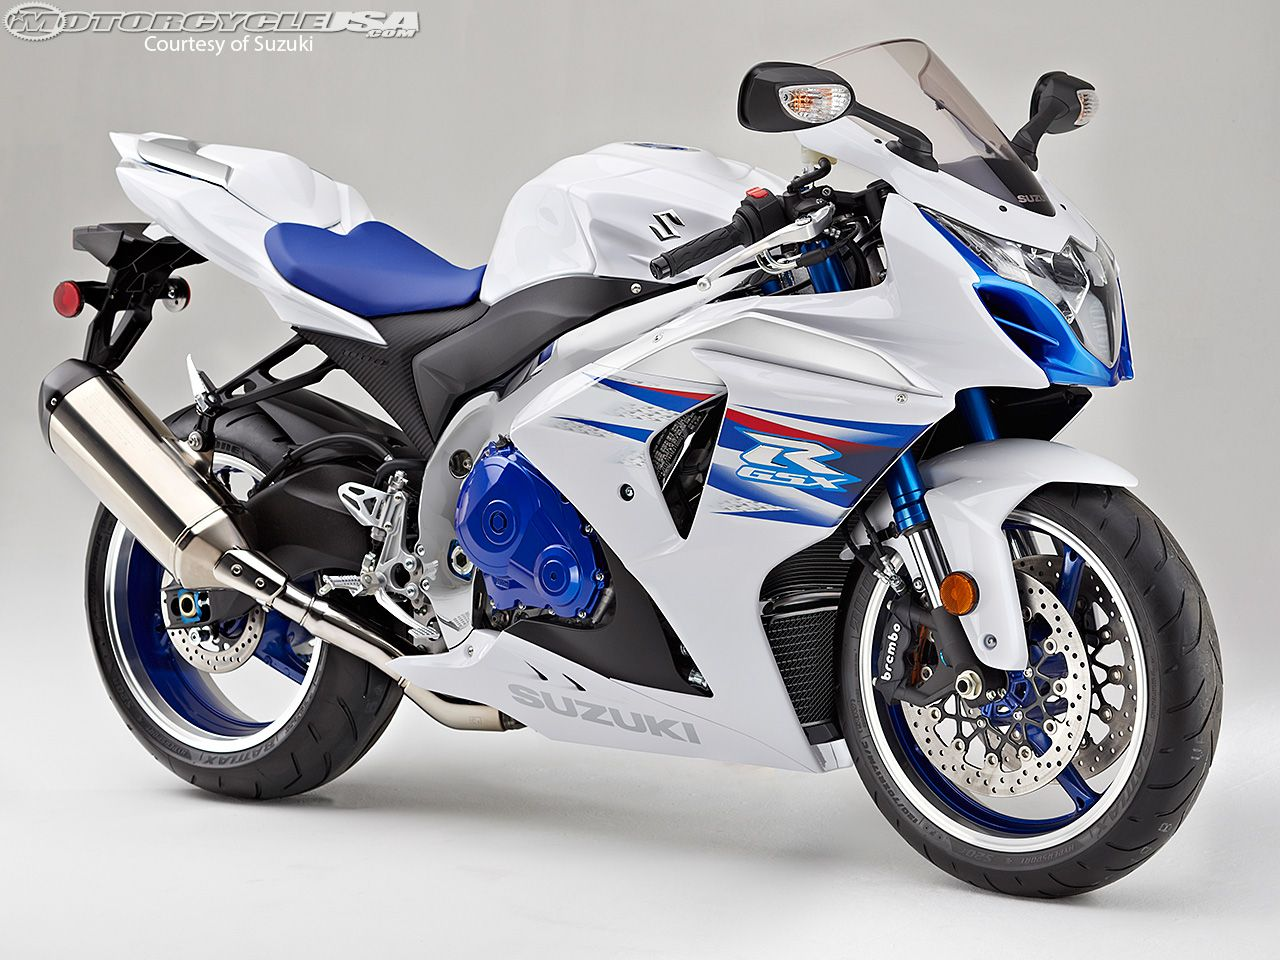 India sports bike bike wale wallpapers 1 motocycles and scooters pinterest motorbikes cars and scooters